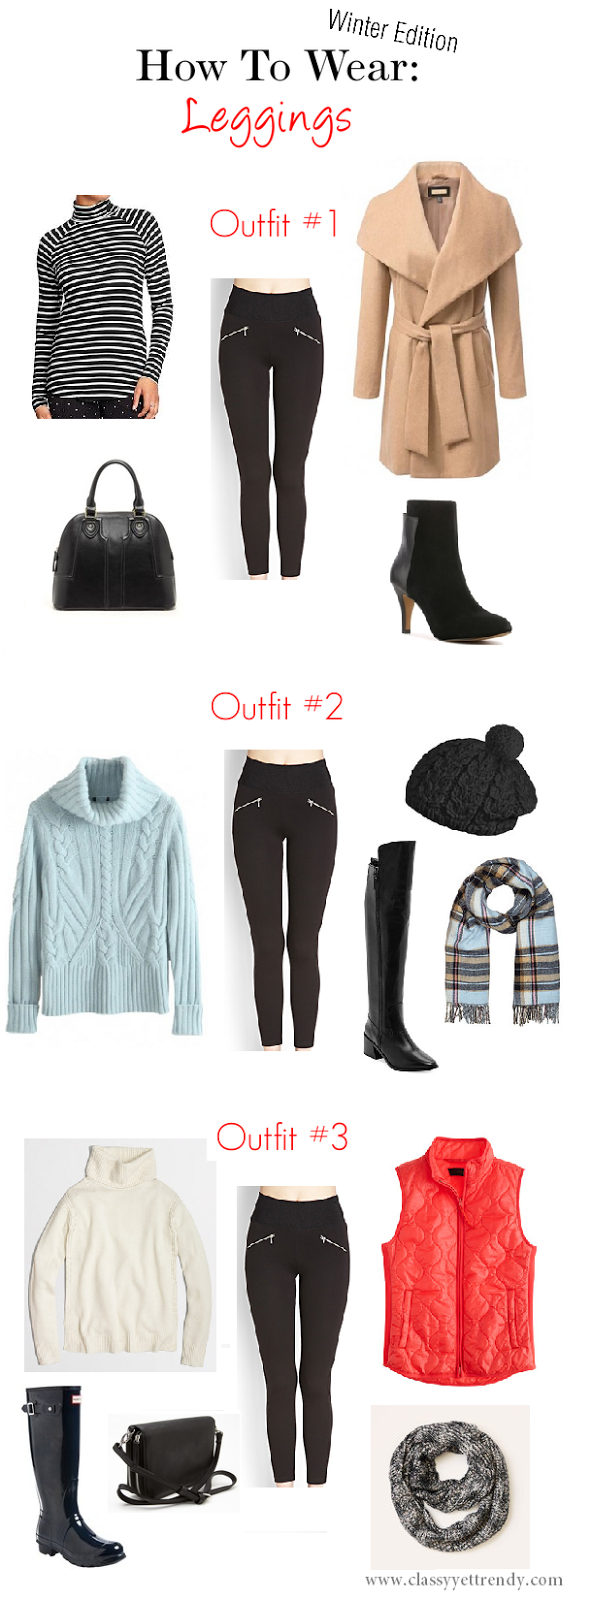 Outfit 1: